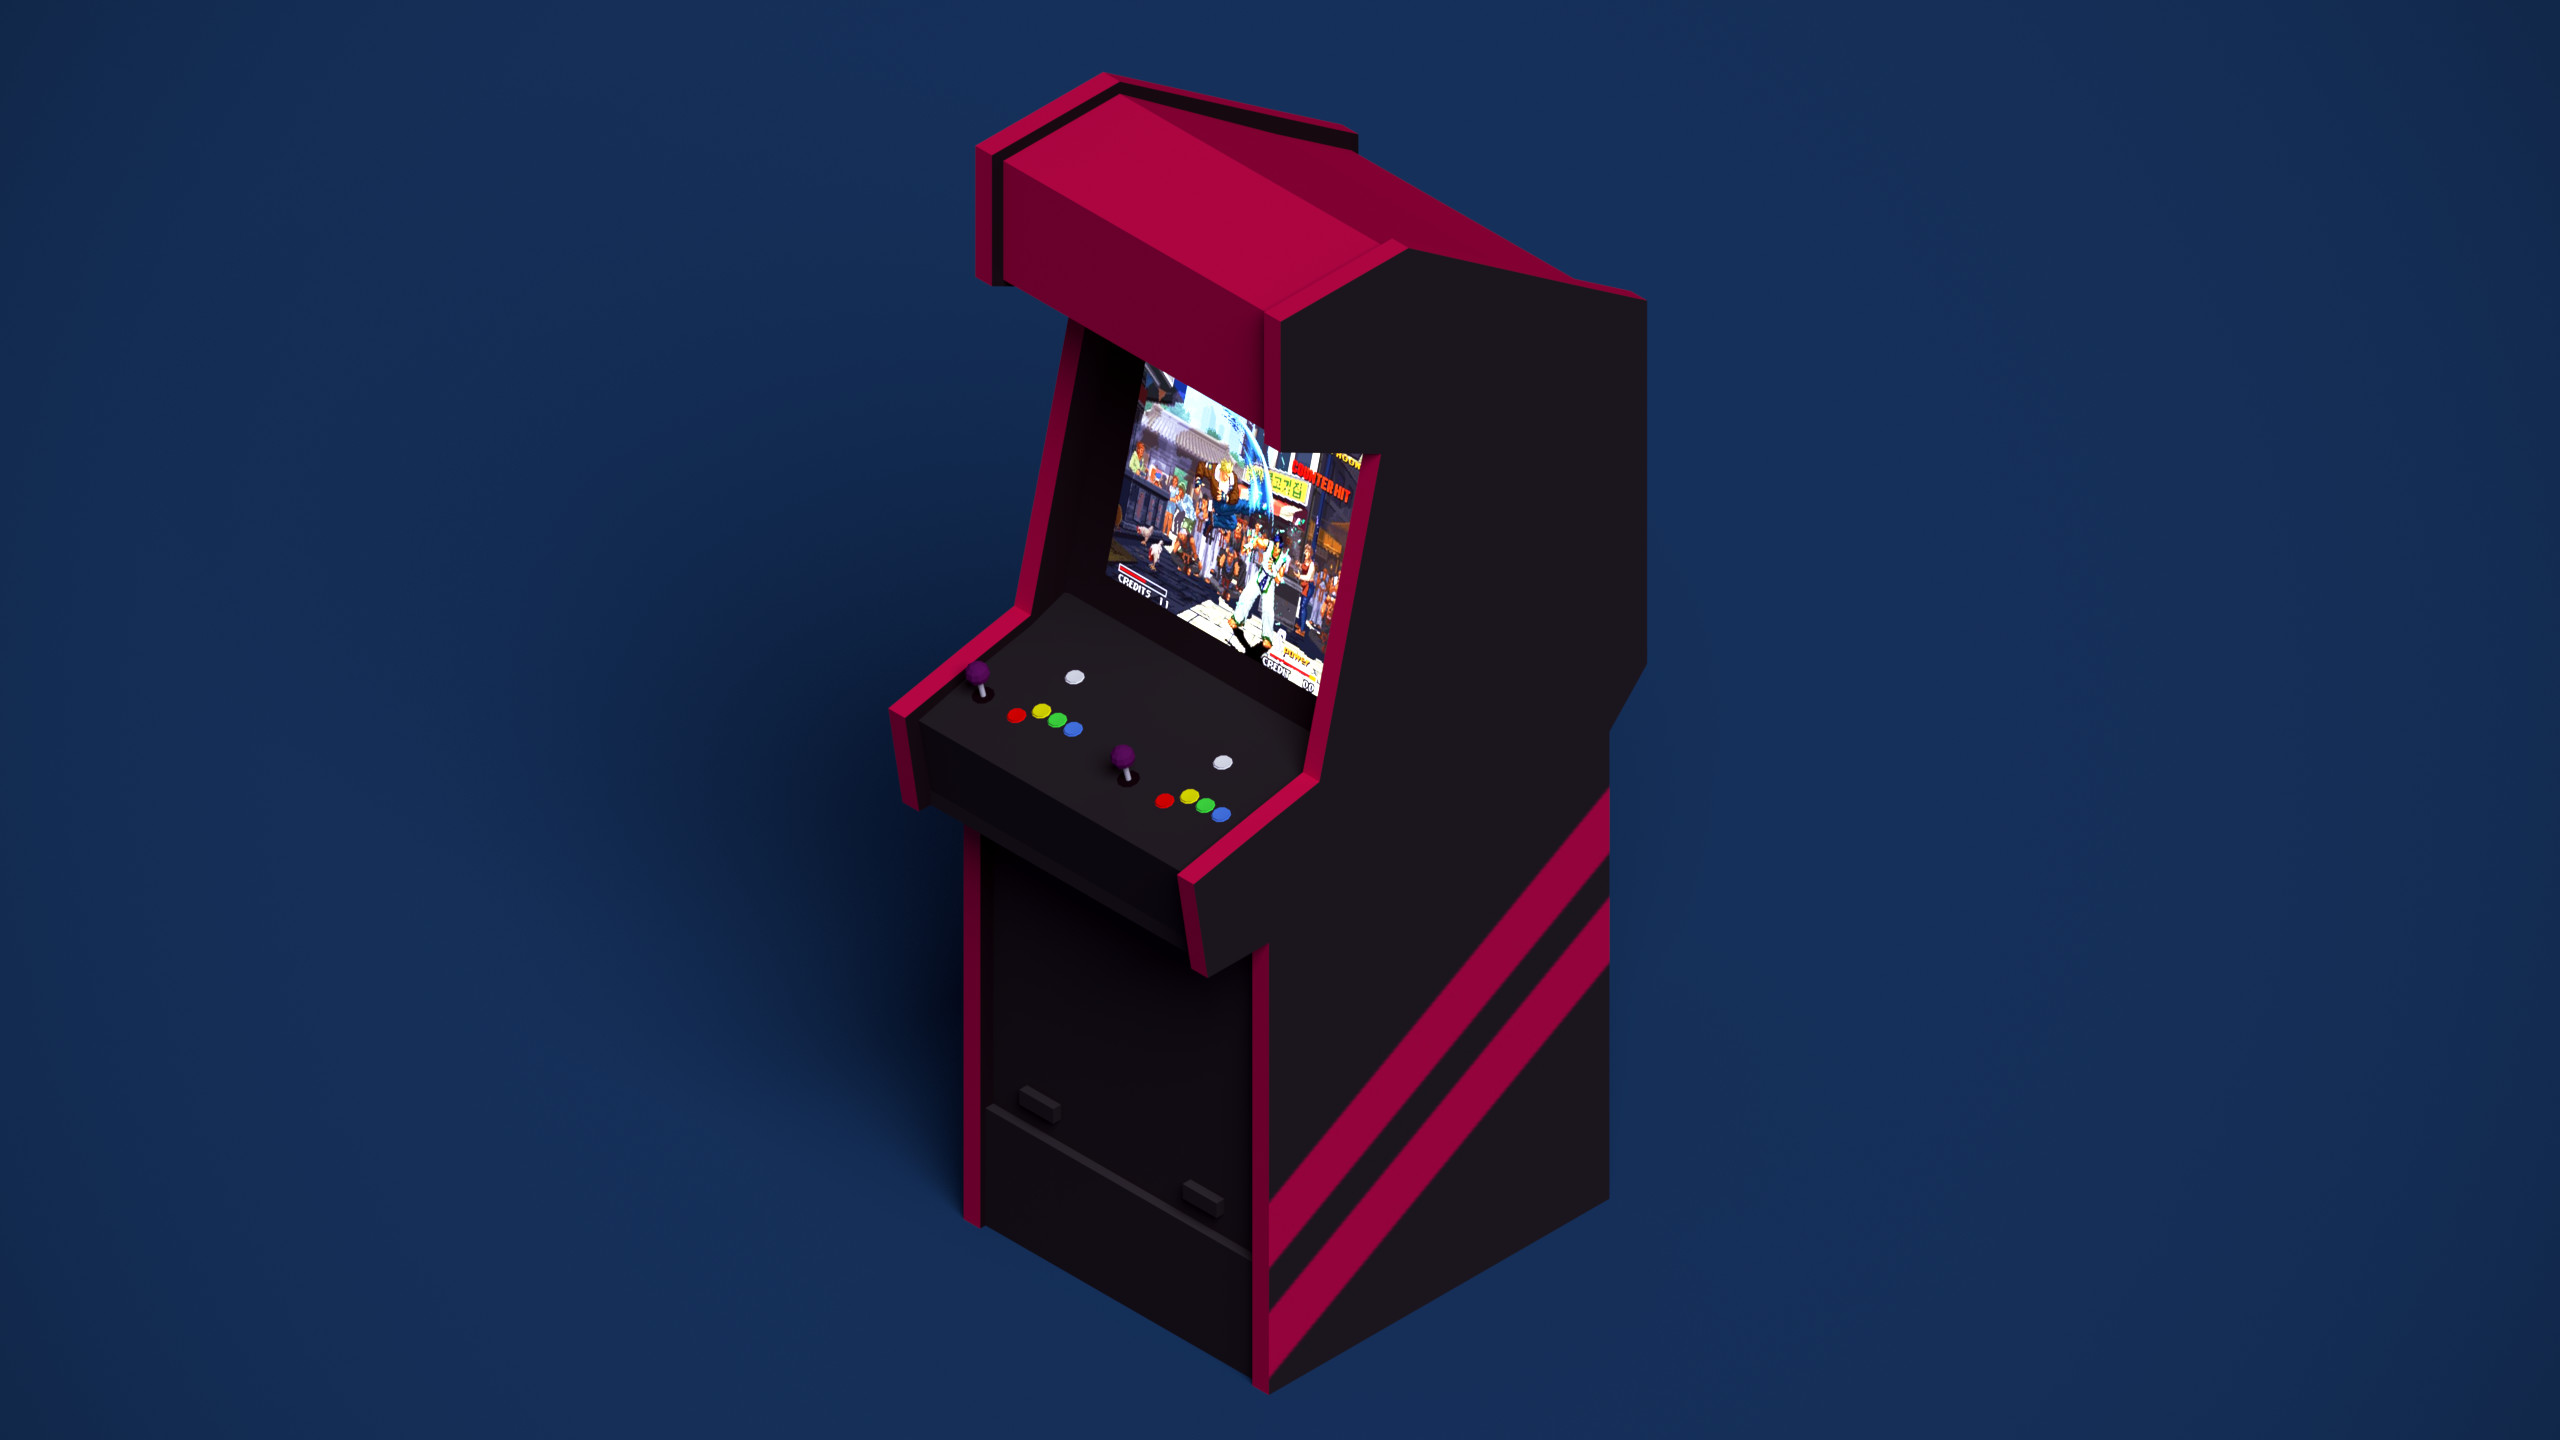 Res: 2560x1440, Awesome Arcade Wallpaper